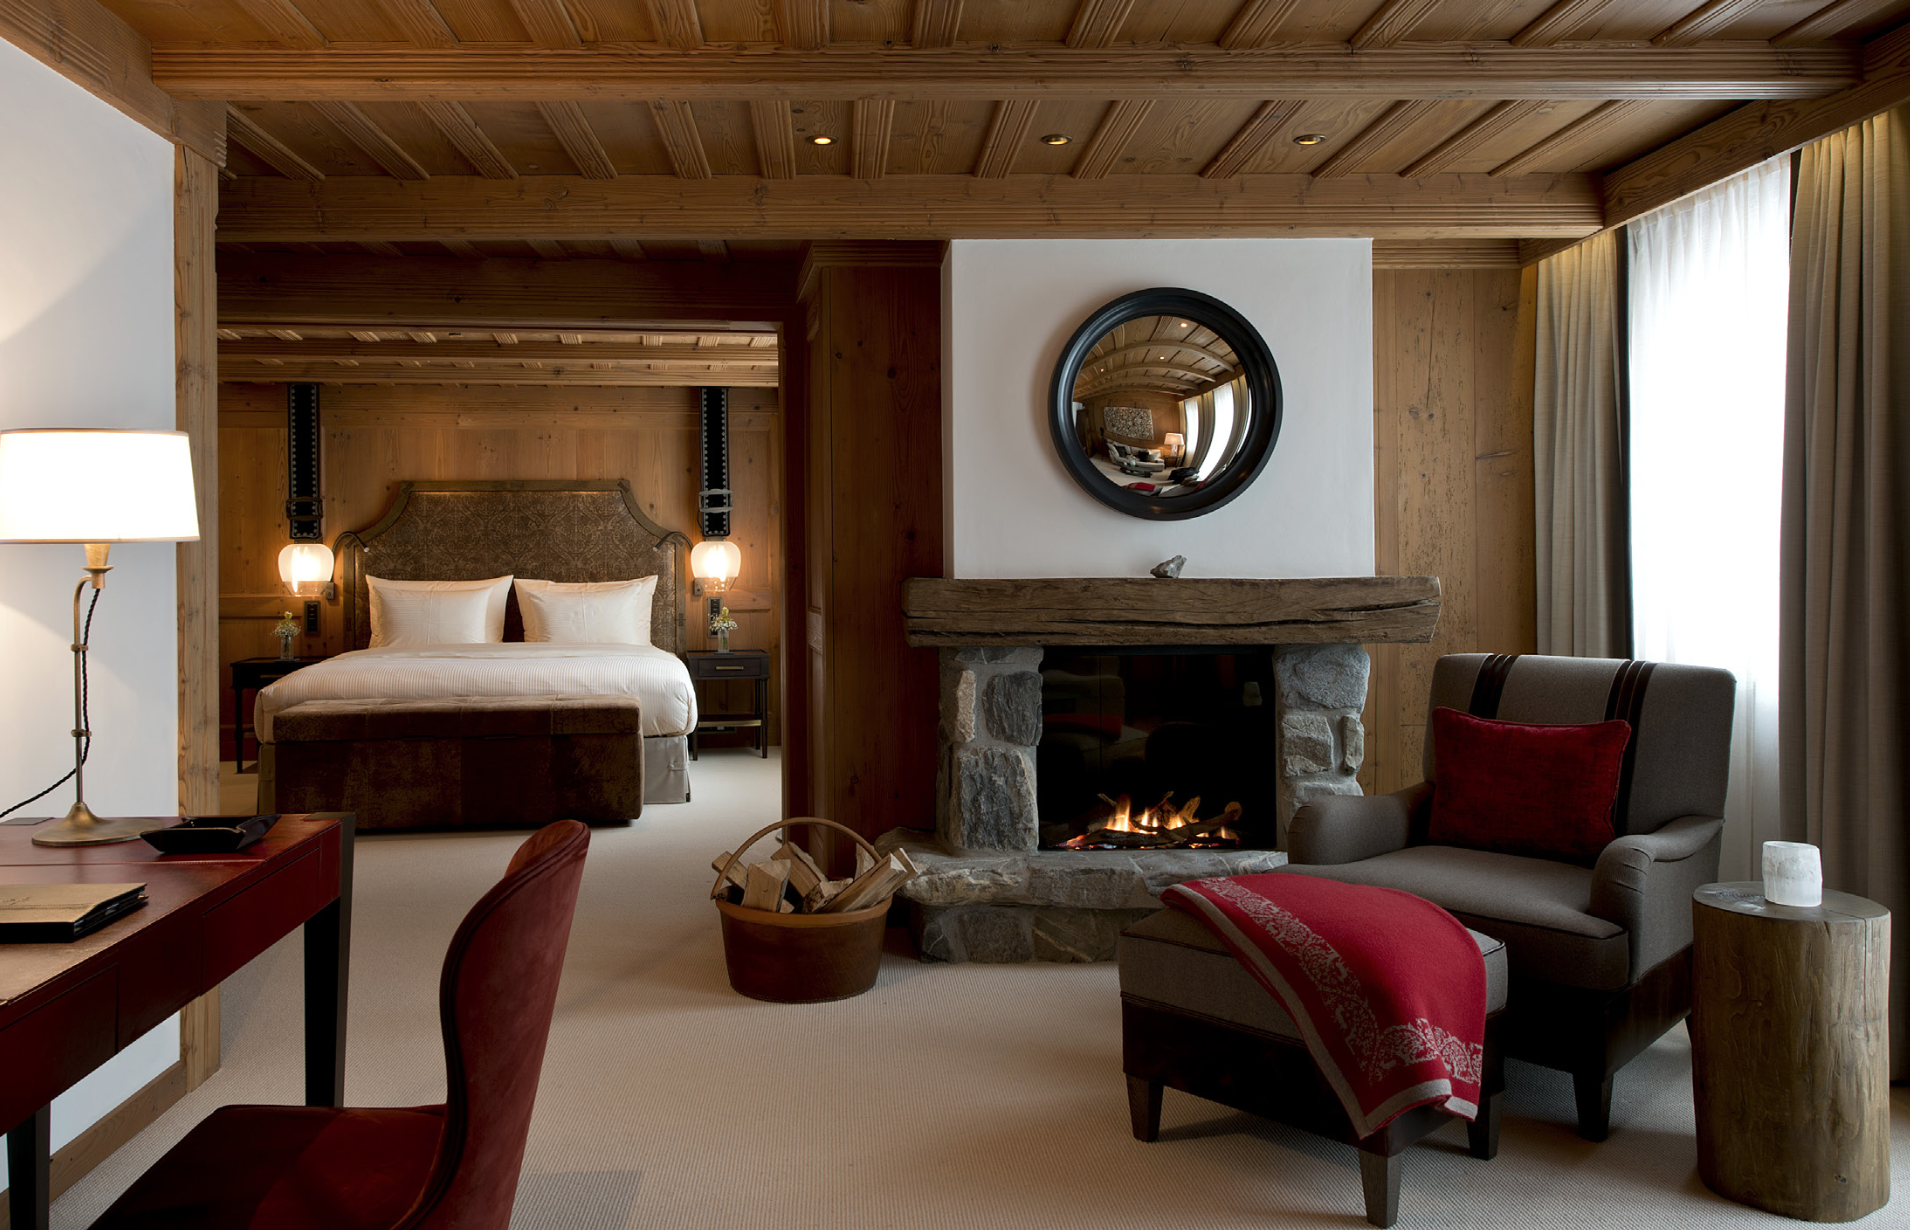 Suite Dreams: Swiss artisans have created the interiors at The Alpina, using local stone and period woodwork